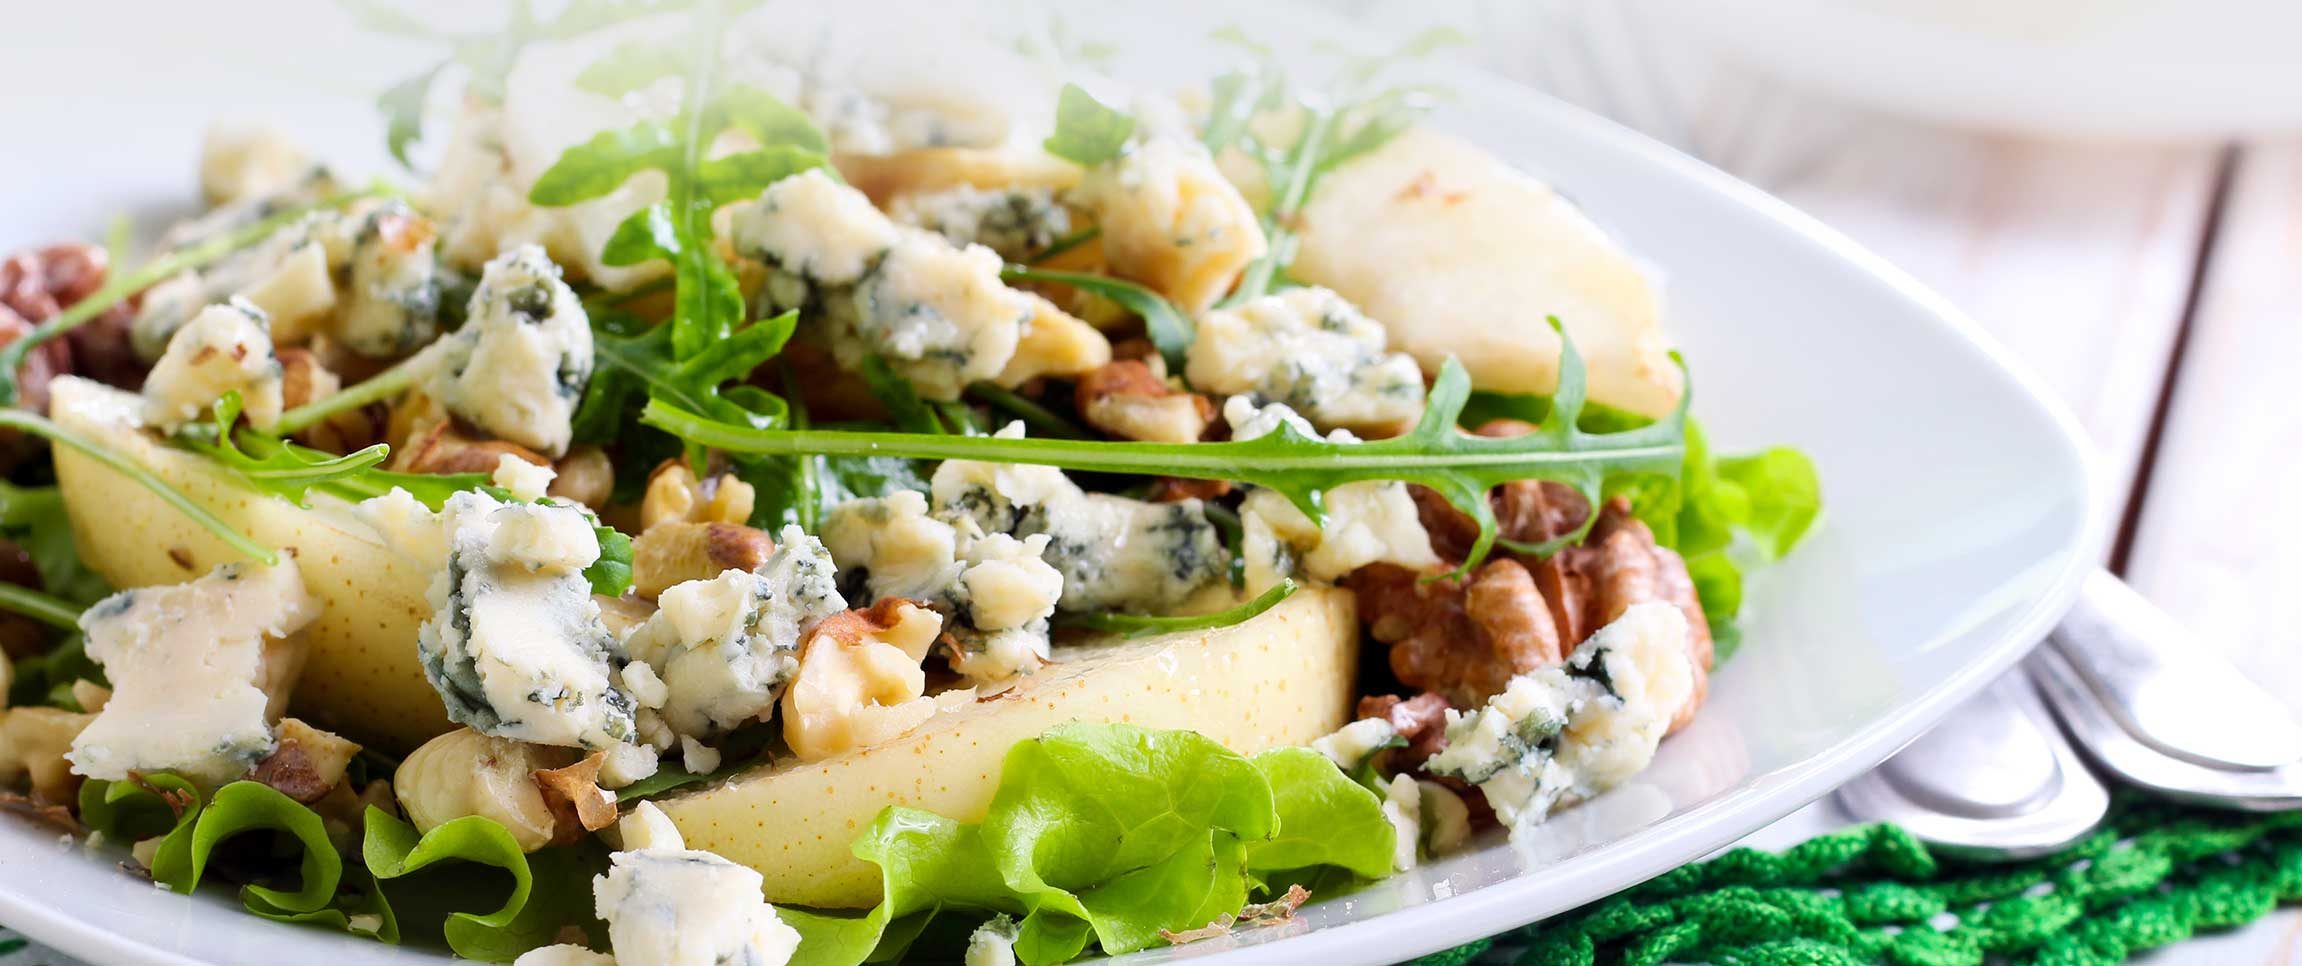 Spring Salad with Pears, Walnuts, and Blue Cheese Crumbles